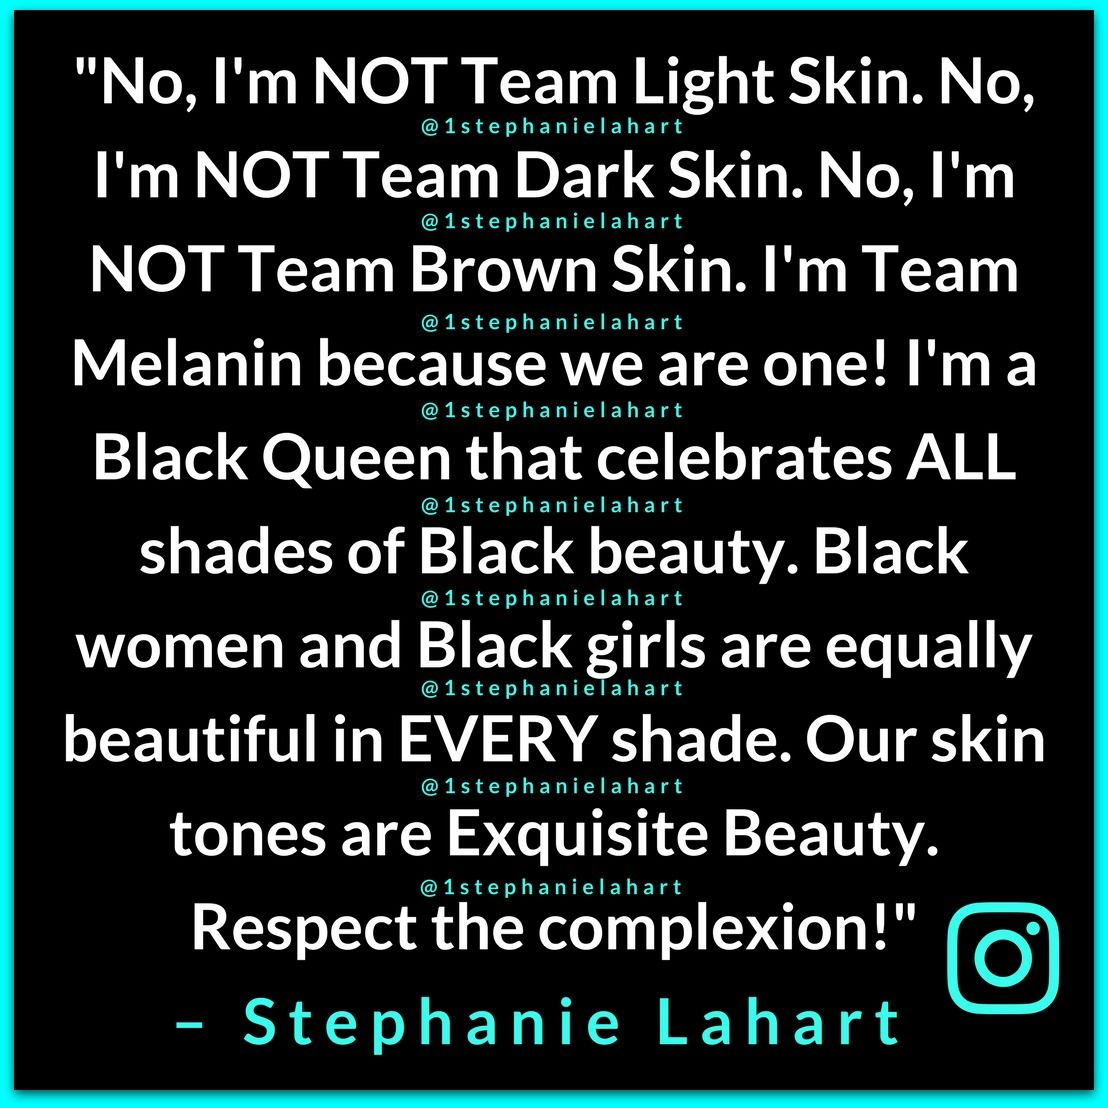 Empowering Melanin Quotes Beautiful Black Queens Black Women And Black Girls Celebrating All Shades Black Girl Quotes Black Women Quotes Black Queen Quotes